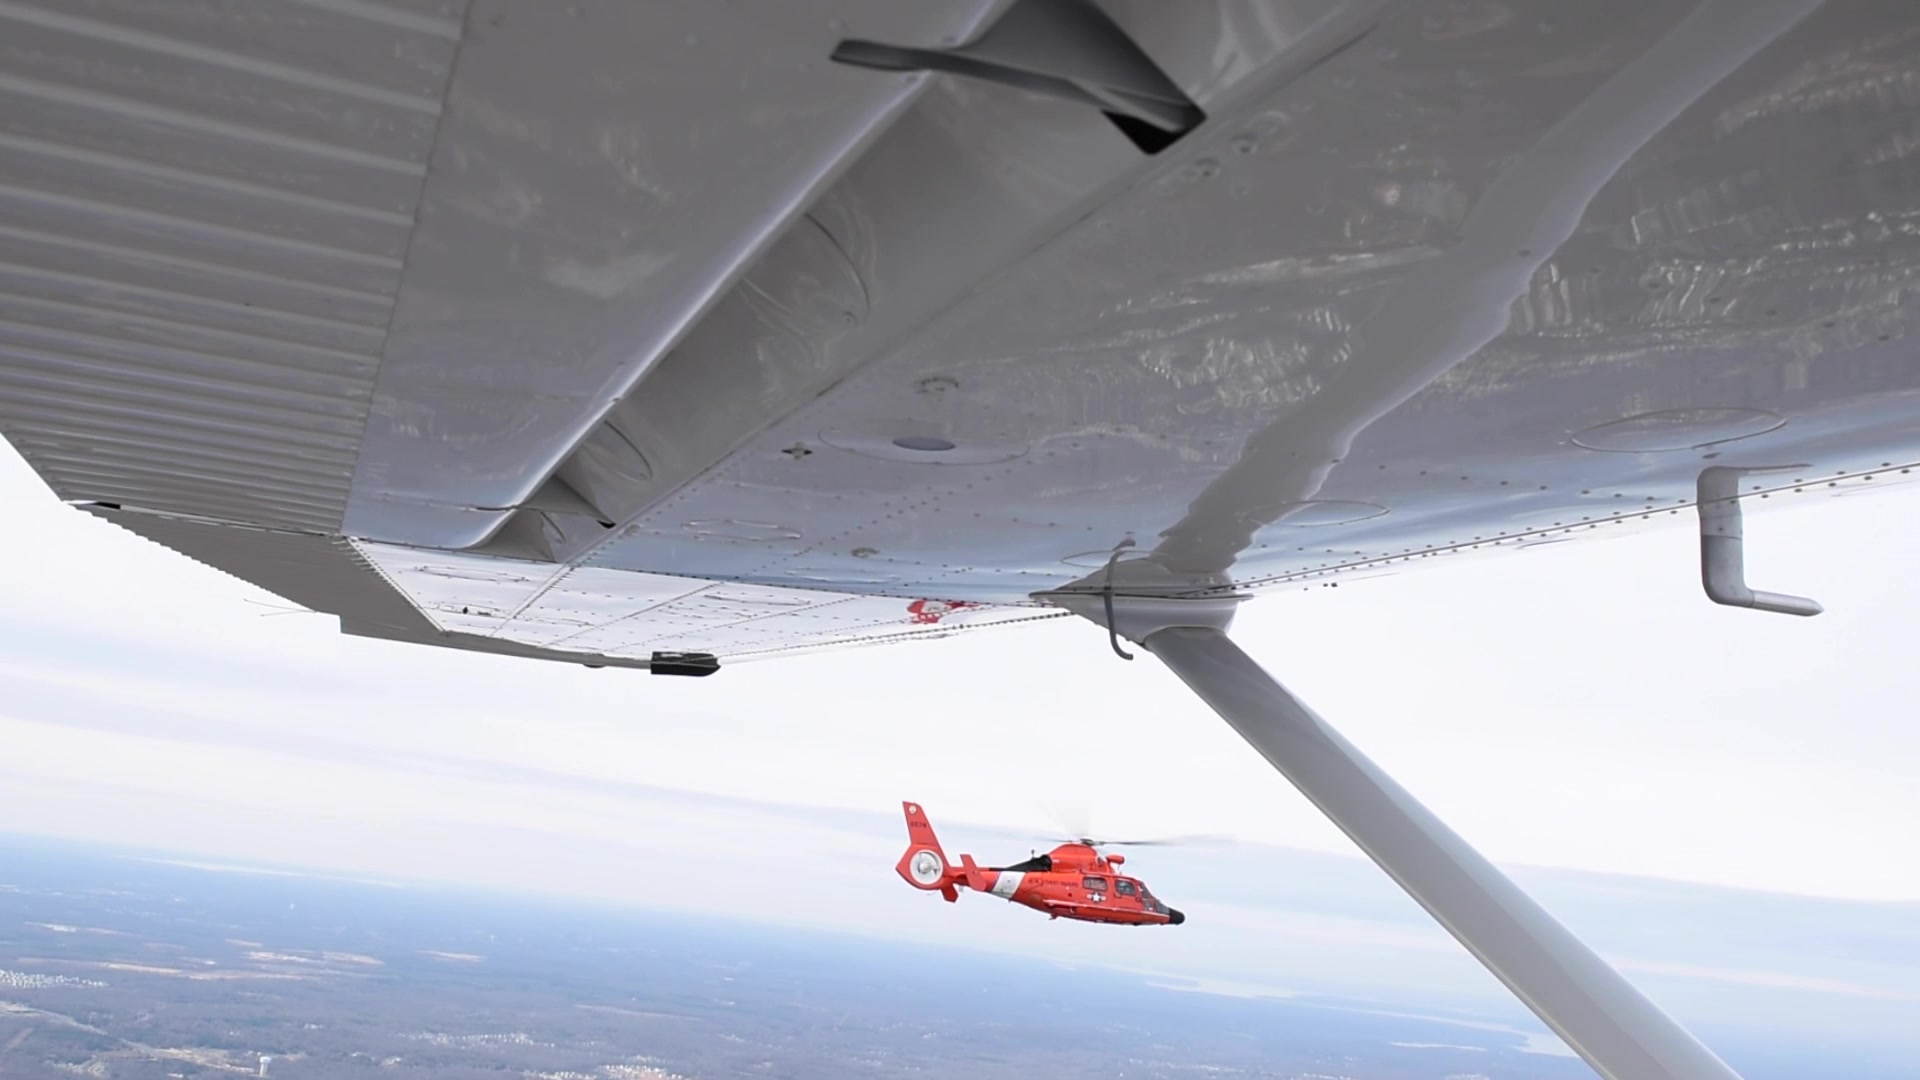 U.S. Coast Guard Blackjack aircrews aboard an MH-65 Dolphin helicopter, intercept Civil Air Patrol aircraft posing as a potential threat in restricted airspace in the Washington, D.C., area on March 11, 2020. The helicopters are used as a warning to ensure aircraft are aware of their intrusion in restricted airspace and need to change course. U.S. Coast Guard photo by Petty Officer 1st Class Andy Kendrick.